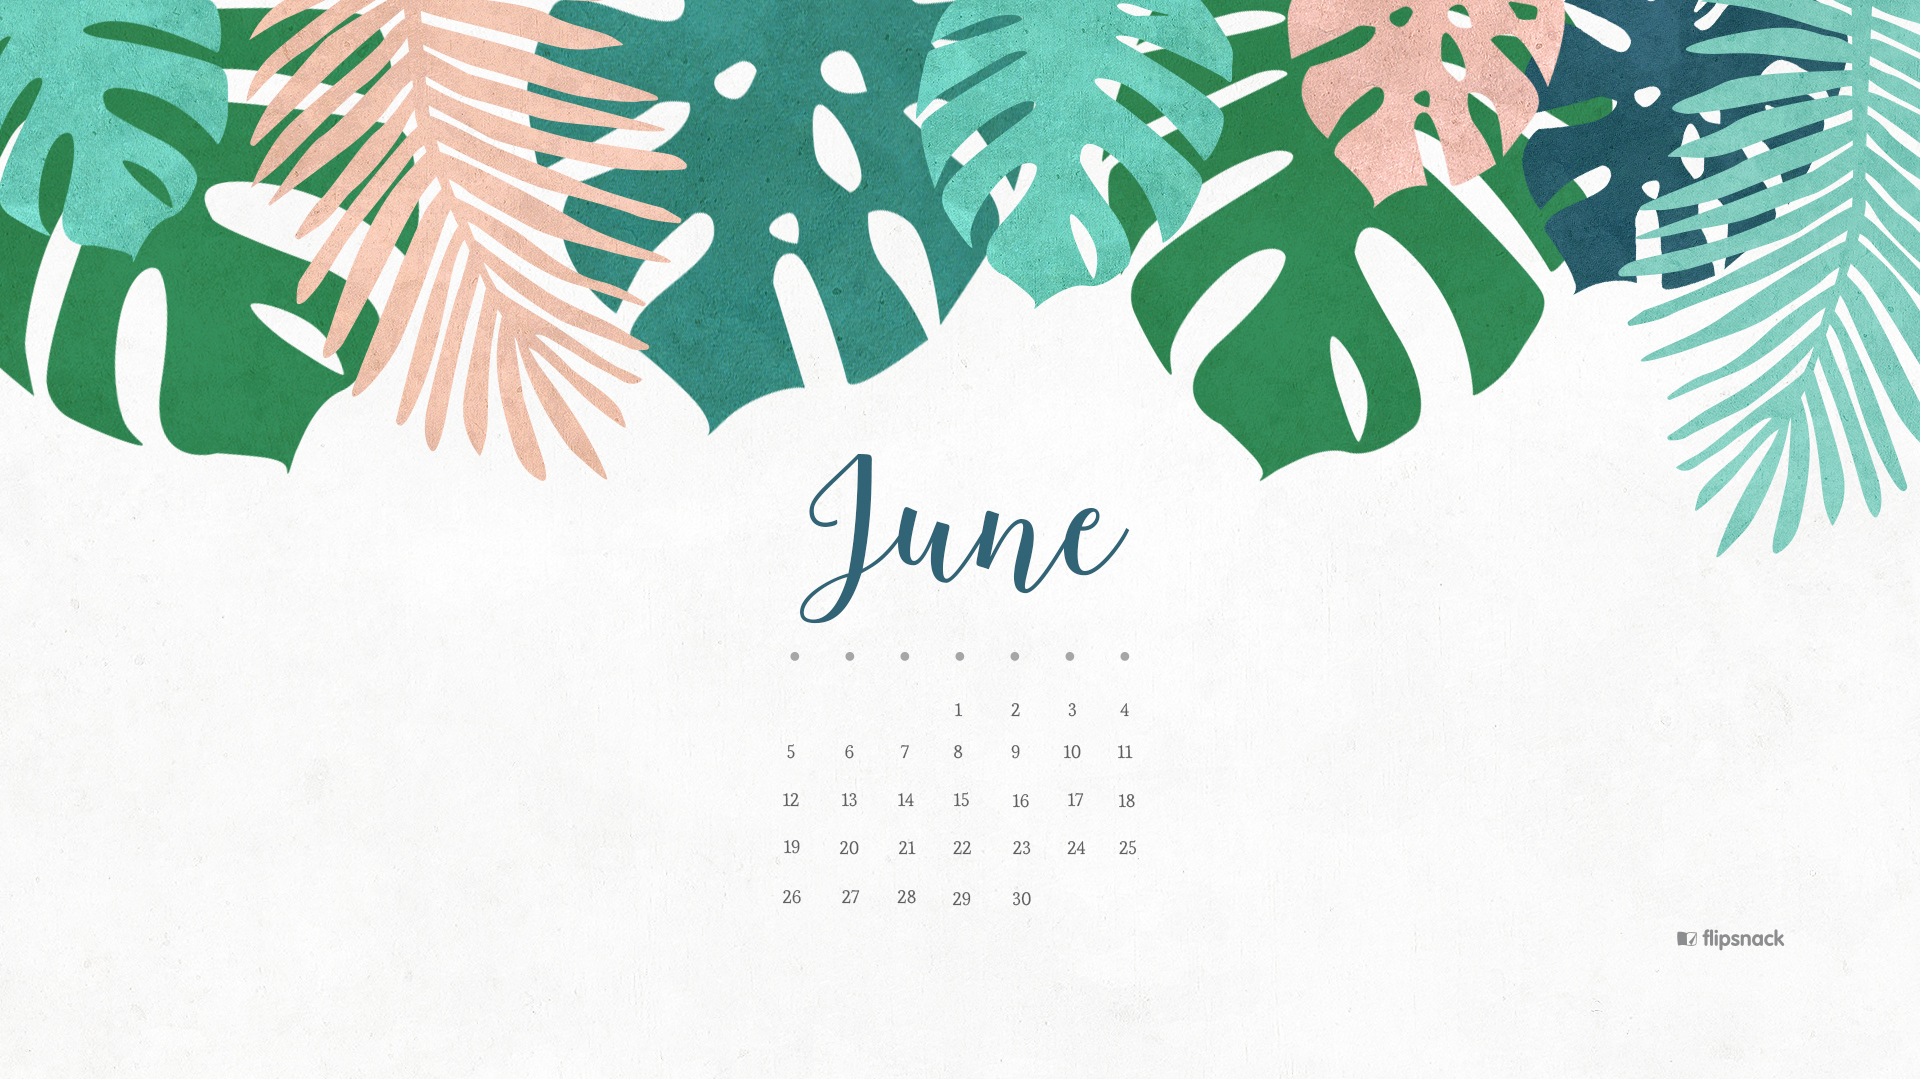 Calendar Computer Wallpaper : June free calendar wallpaper desktop background